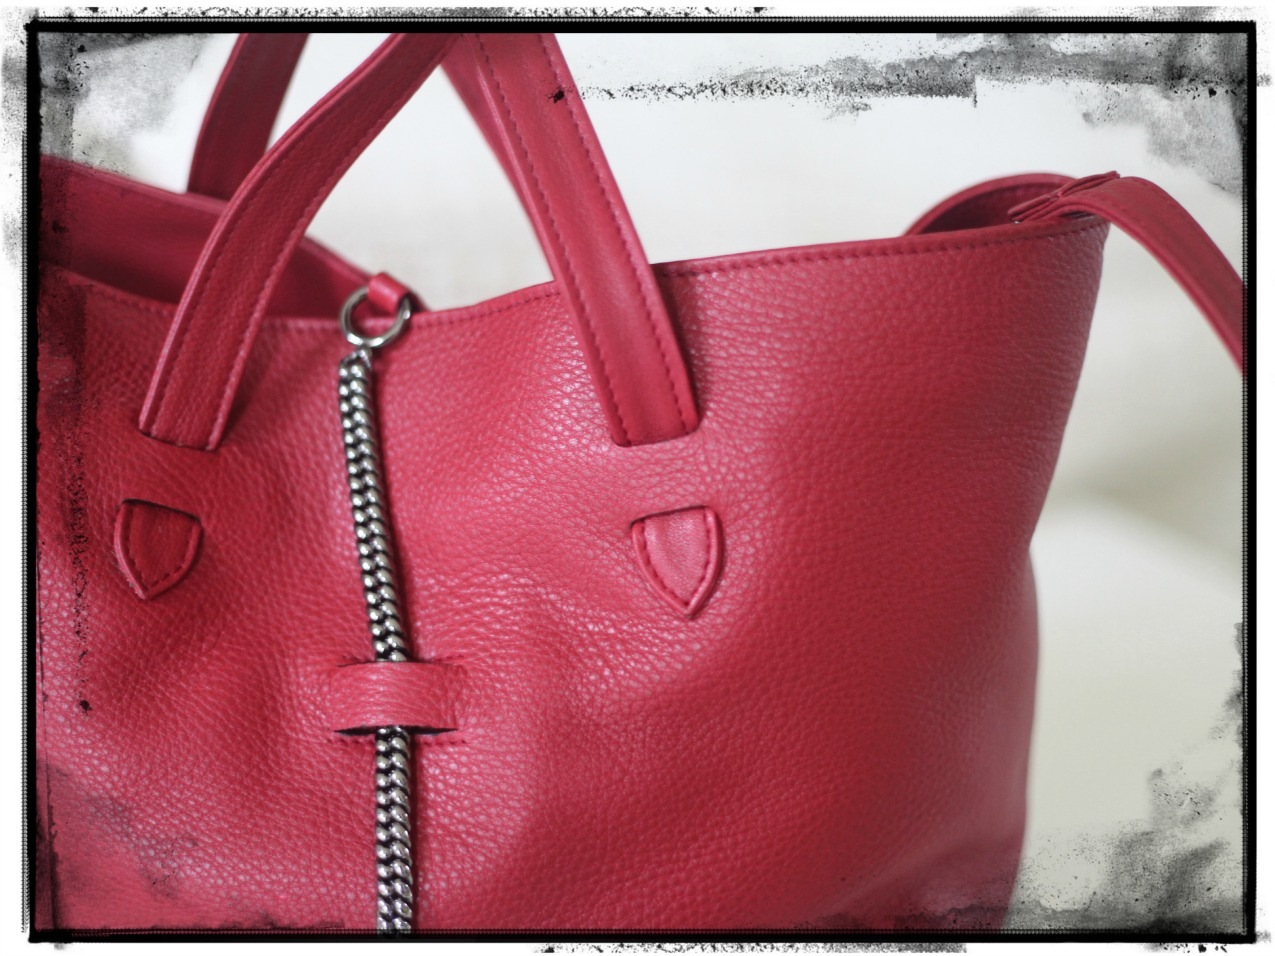 Ninael Cherry Bag, quando stile fa rima con personalità, alessia milanese, thechilicool, fashion blogger, fashion blog